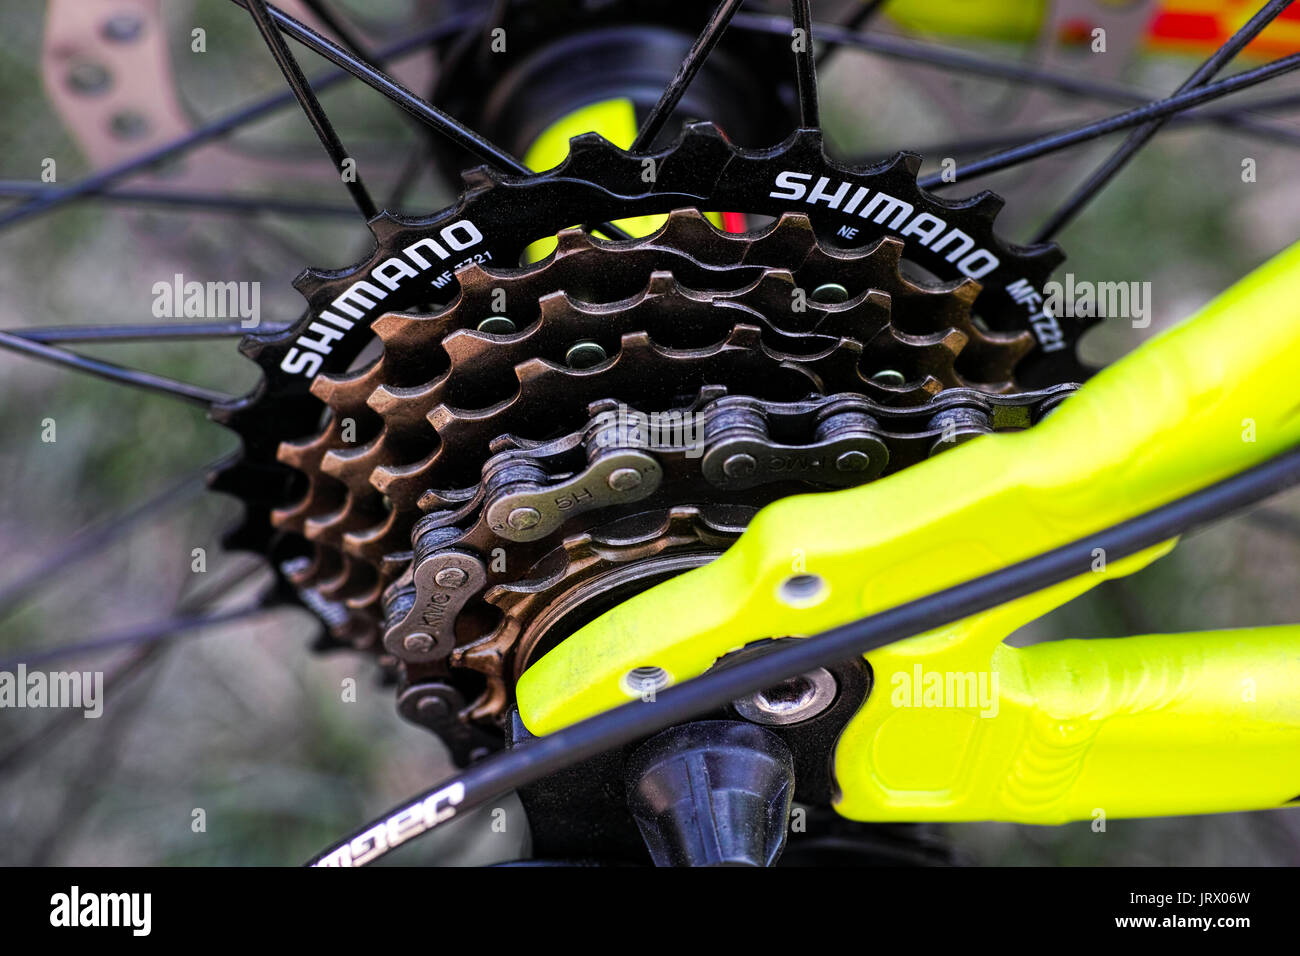 Tambov, Russian Federation - May 07, 2017 Shimano gear cassette on bicycle. Top view. Stock Photo